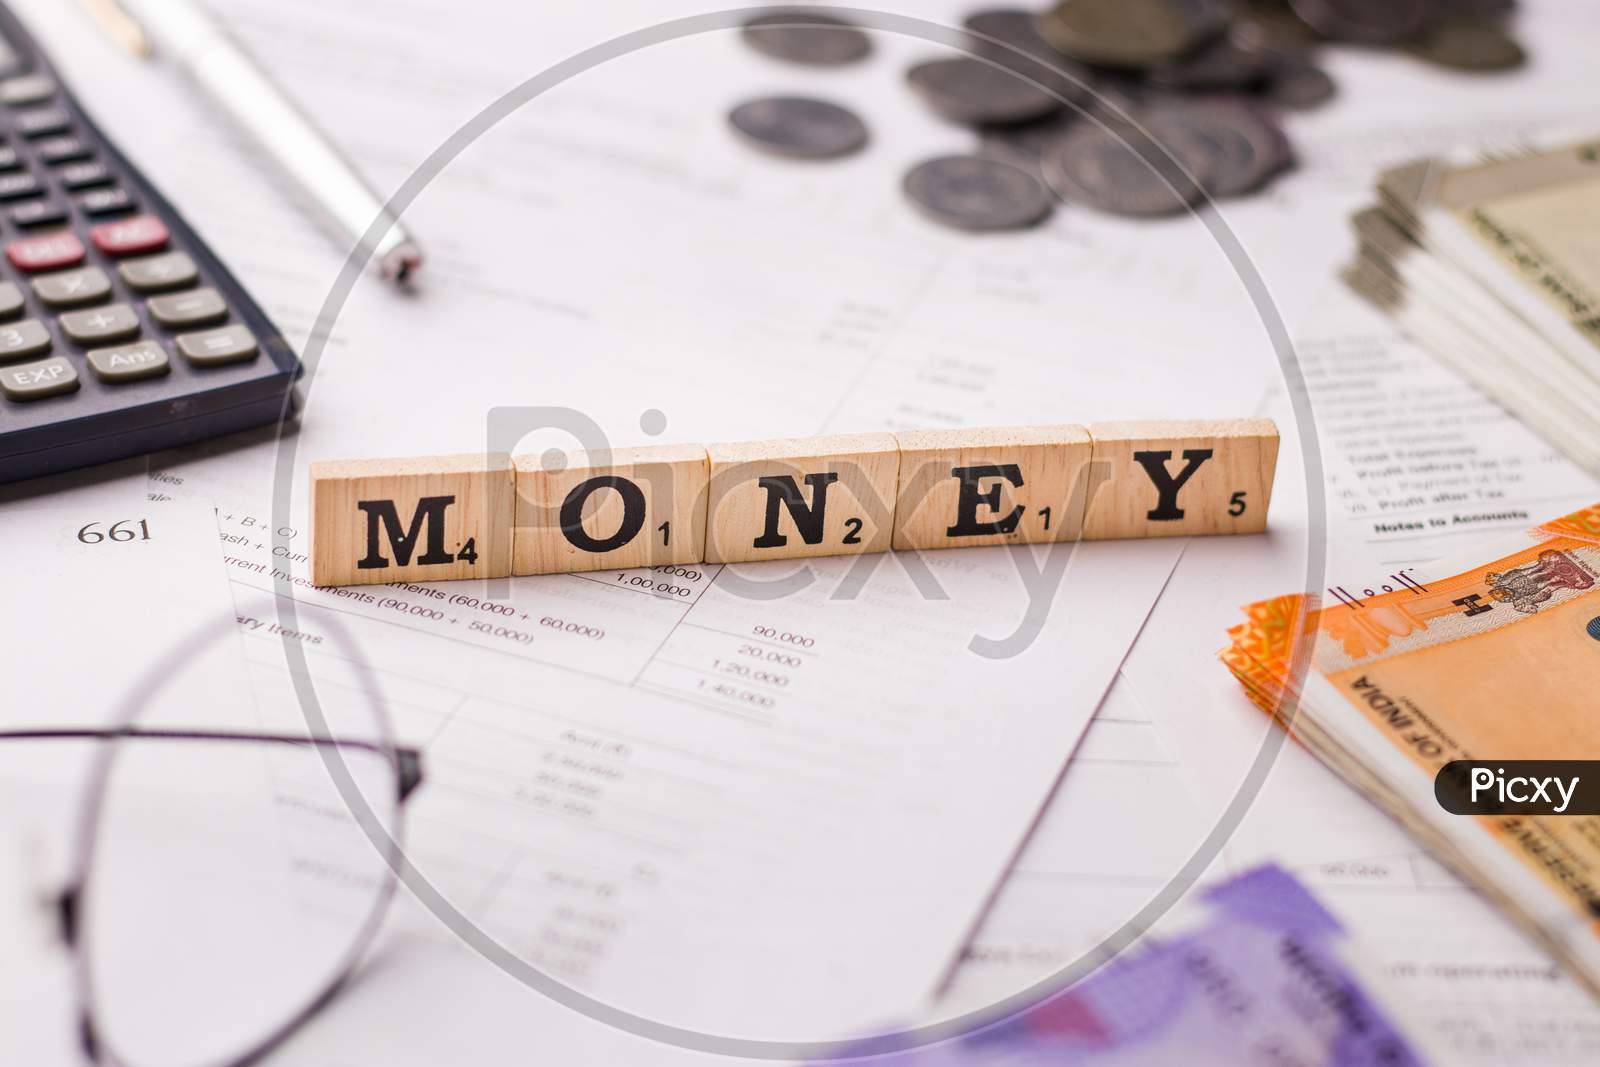 Assam, india - March 30, 2021 : Word MONEY written on wooden cubes stock image.